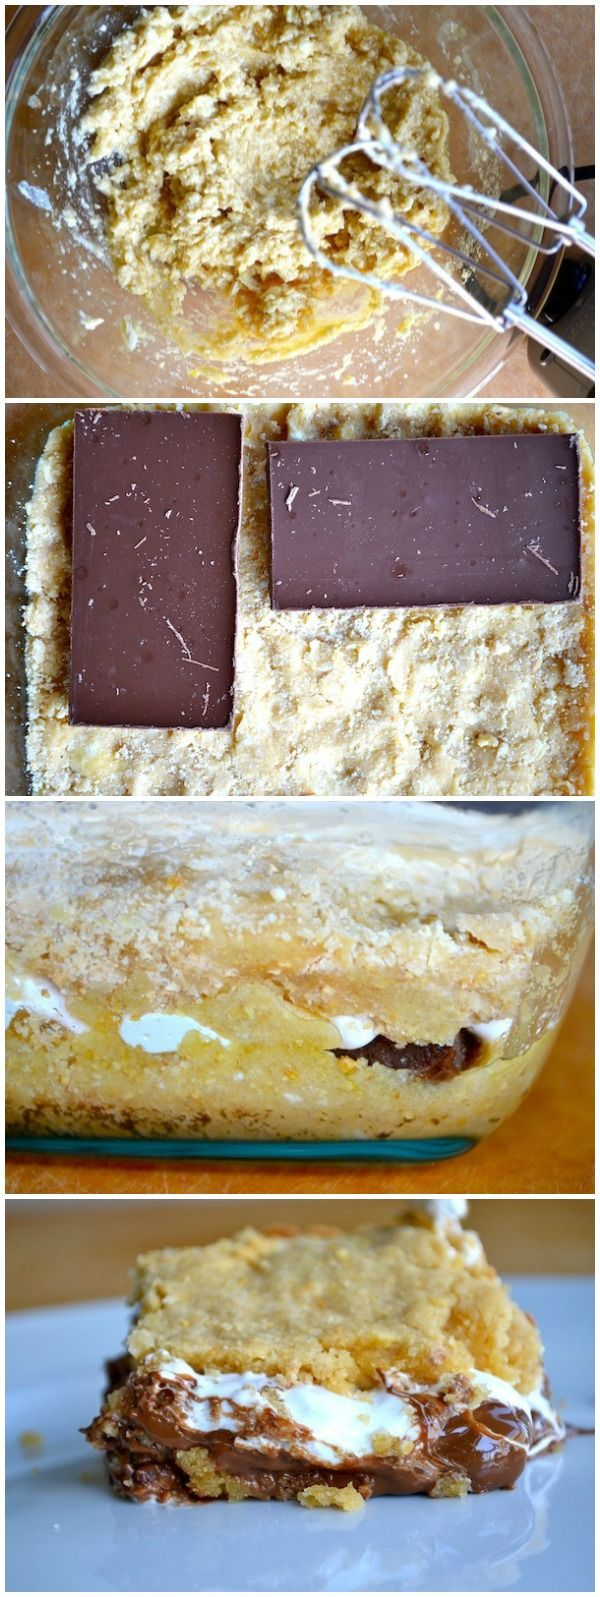 baked s'mores bars - the hard part is spreading the fluff. moist bar.